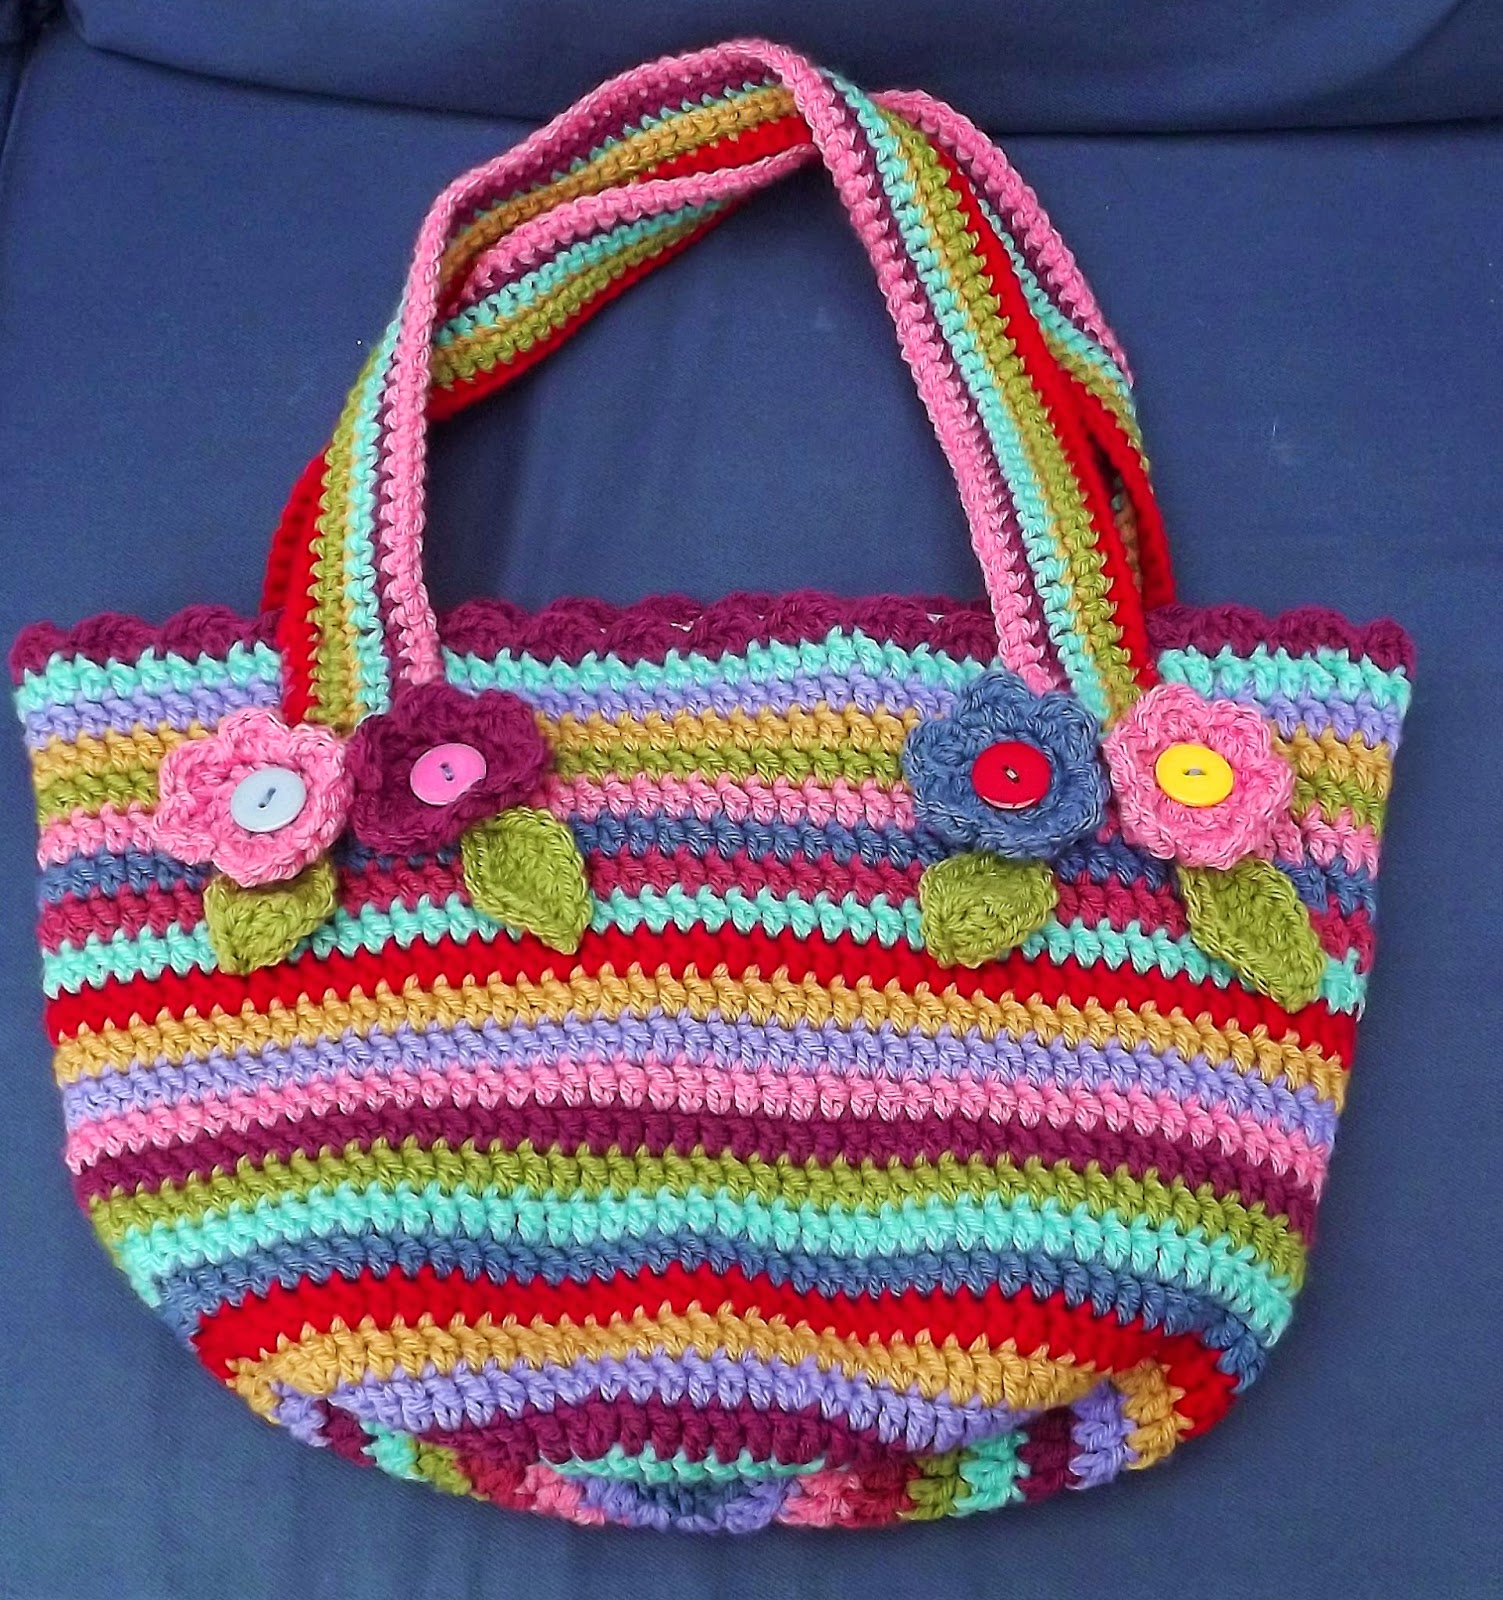 http://tillyscrafts.blogspot.co.uk/2014/07/chunky-crochet-bag.html